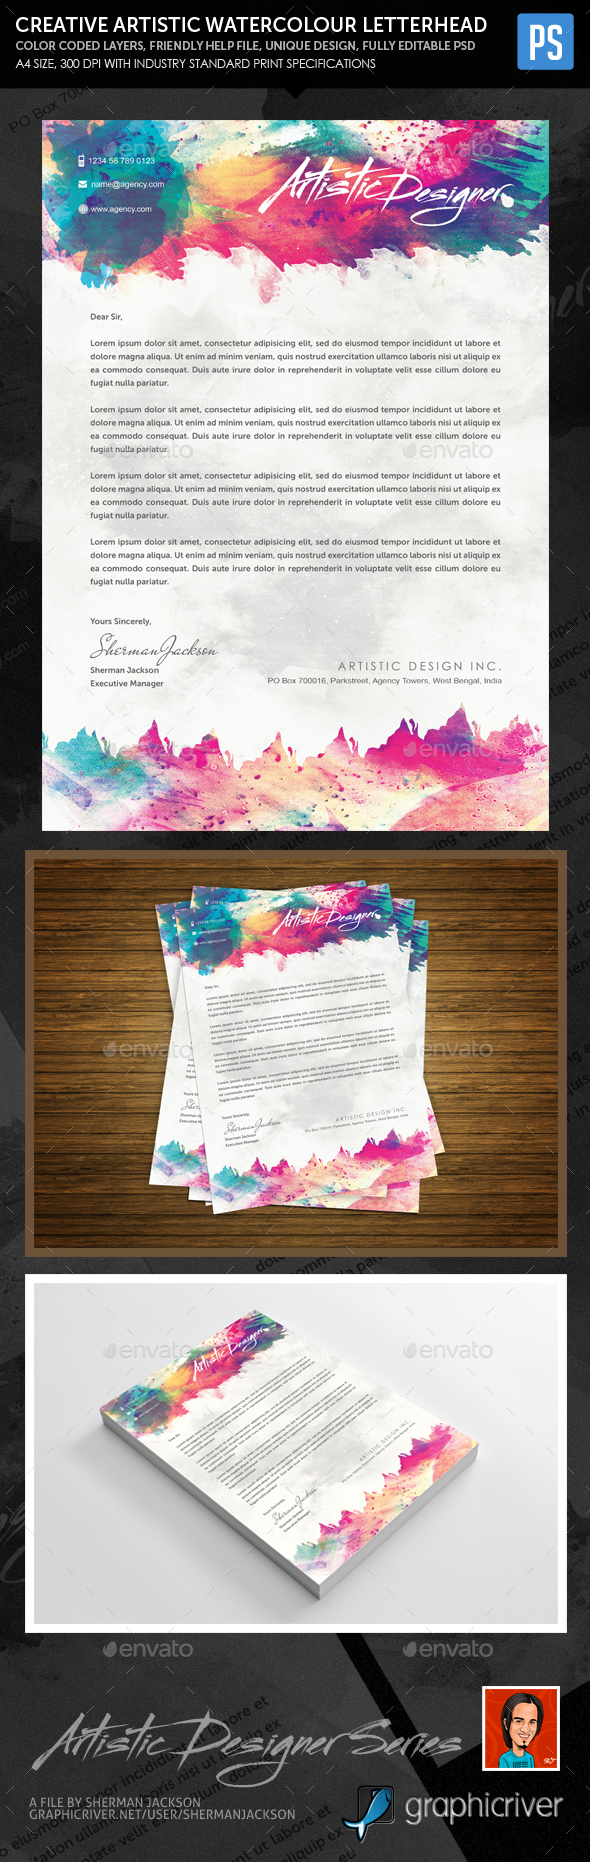 Creative Artistic Watercolour Letterhead - Stationery Print Templates